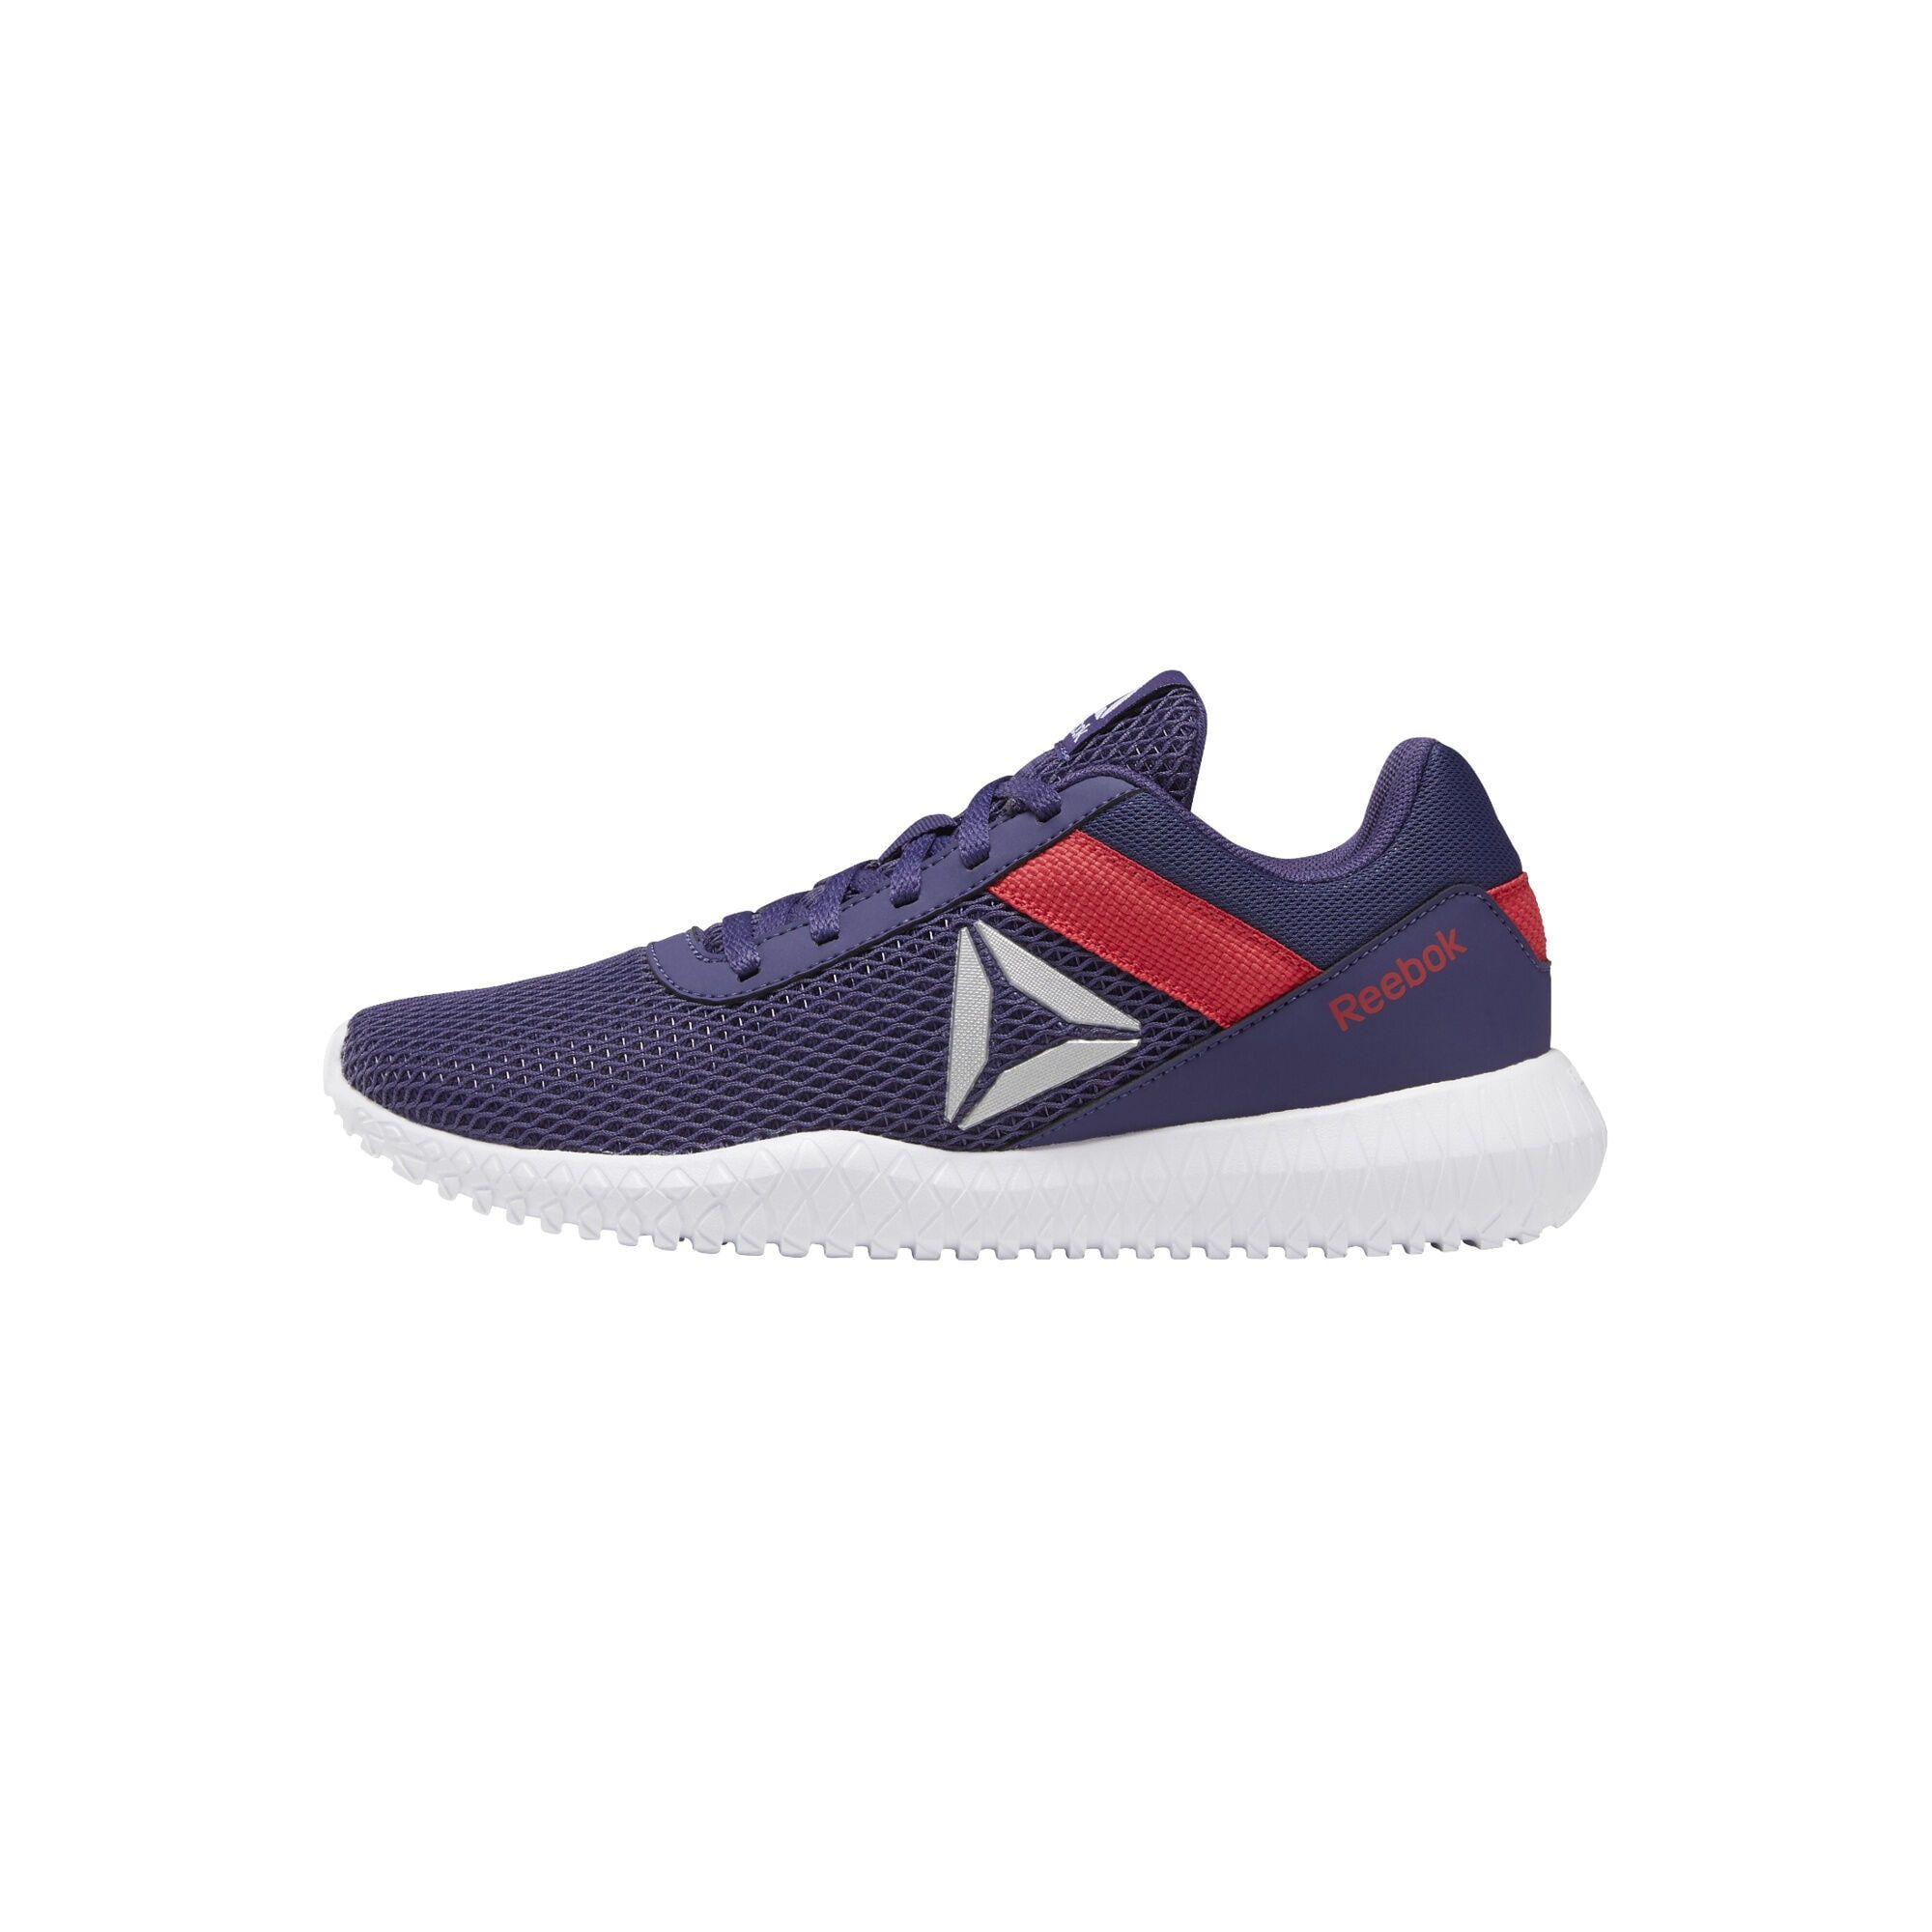 Sportschuhe ´Flexagon Energy Shoes´